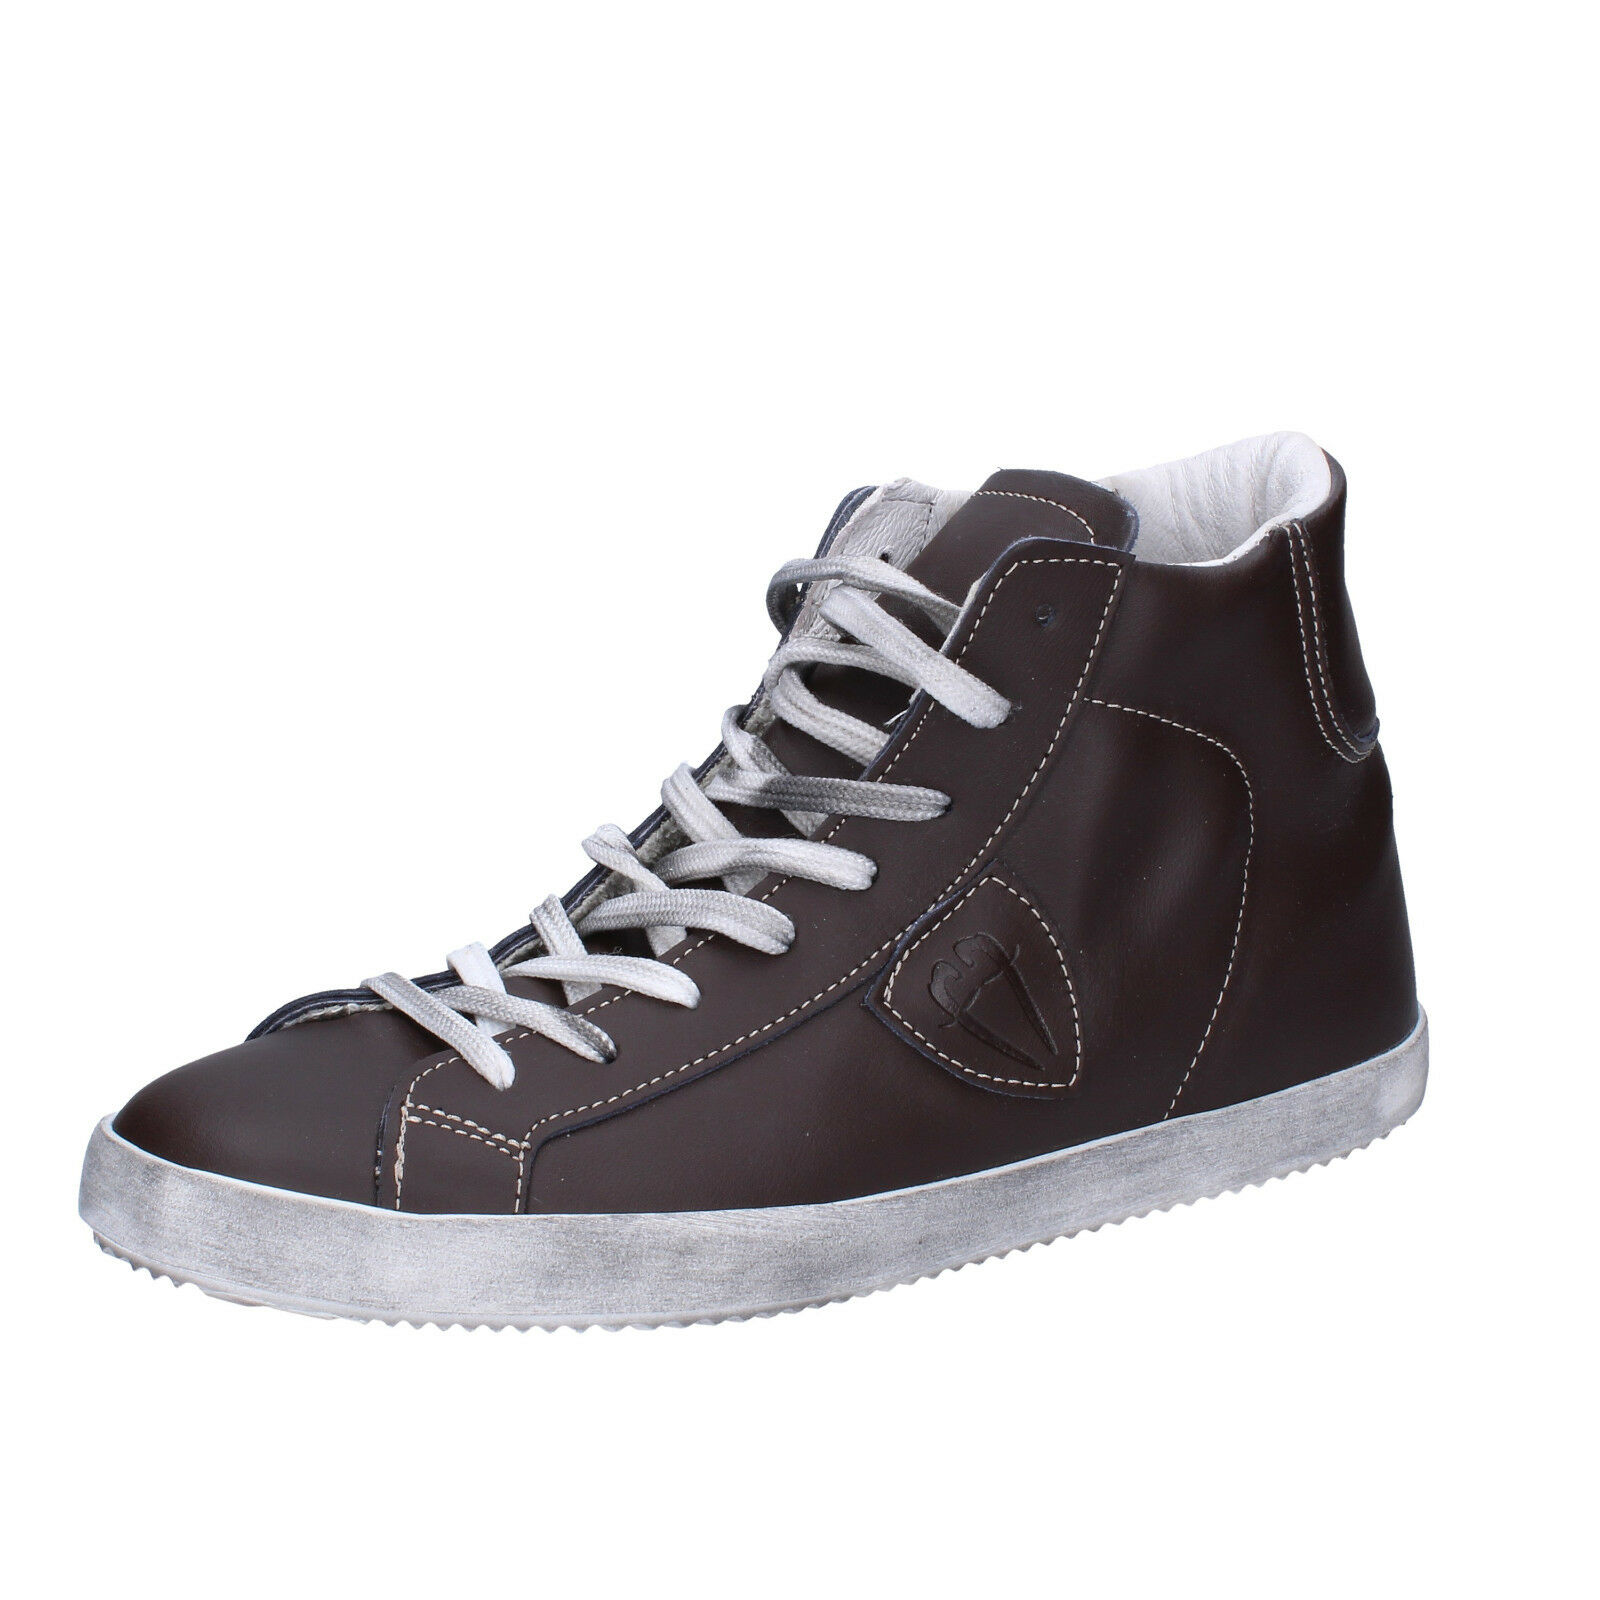 Men's shoes CAFFE' ITALIANO 9 () sneakers brown leather AG305-B